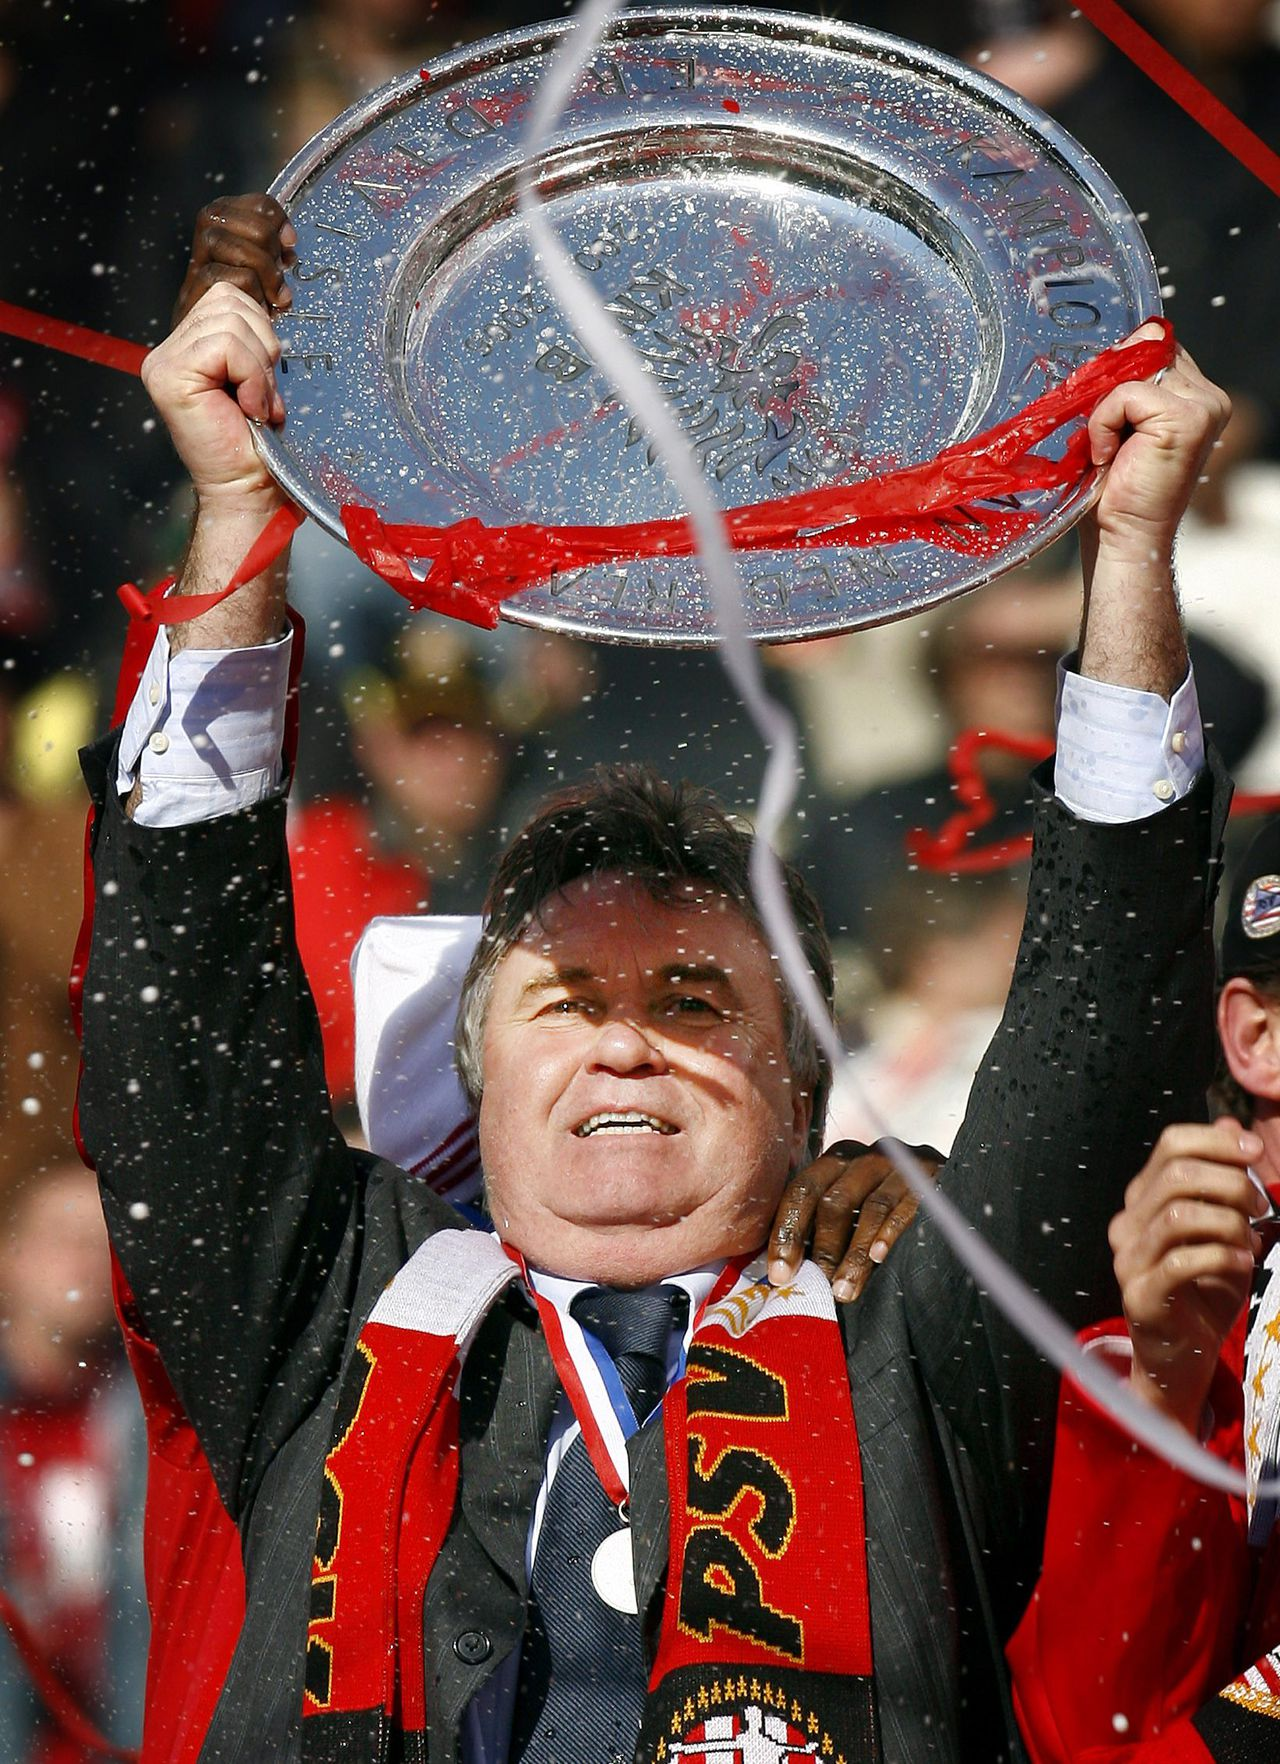 PSV-trainer Guus Hiddink met de kampioensschaal. Foto Reuters PSV Eindhoven coach Guus Hiddink holds the trophy in Eindhoven April 9, 2006. PSV Eindhoven retained the Dutch league title on Sunday with a 1-1 draw at home to Groningen, moving on to 80 points with two games left to play. REUTERS/Toussaint Kluiters